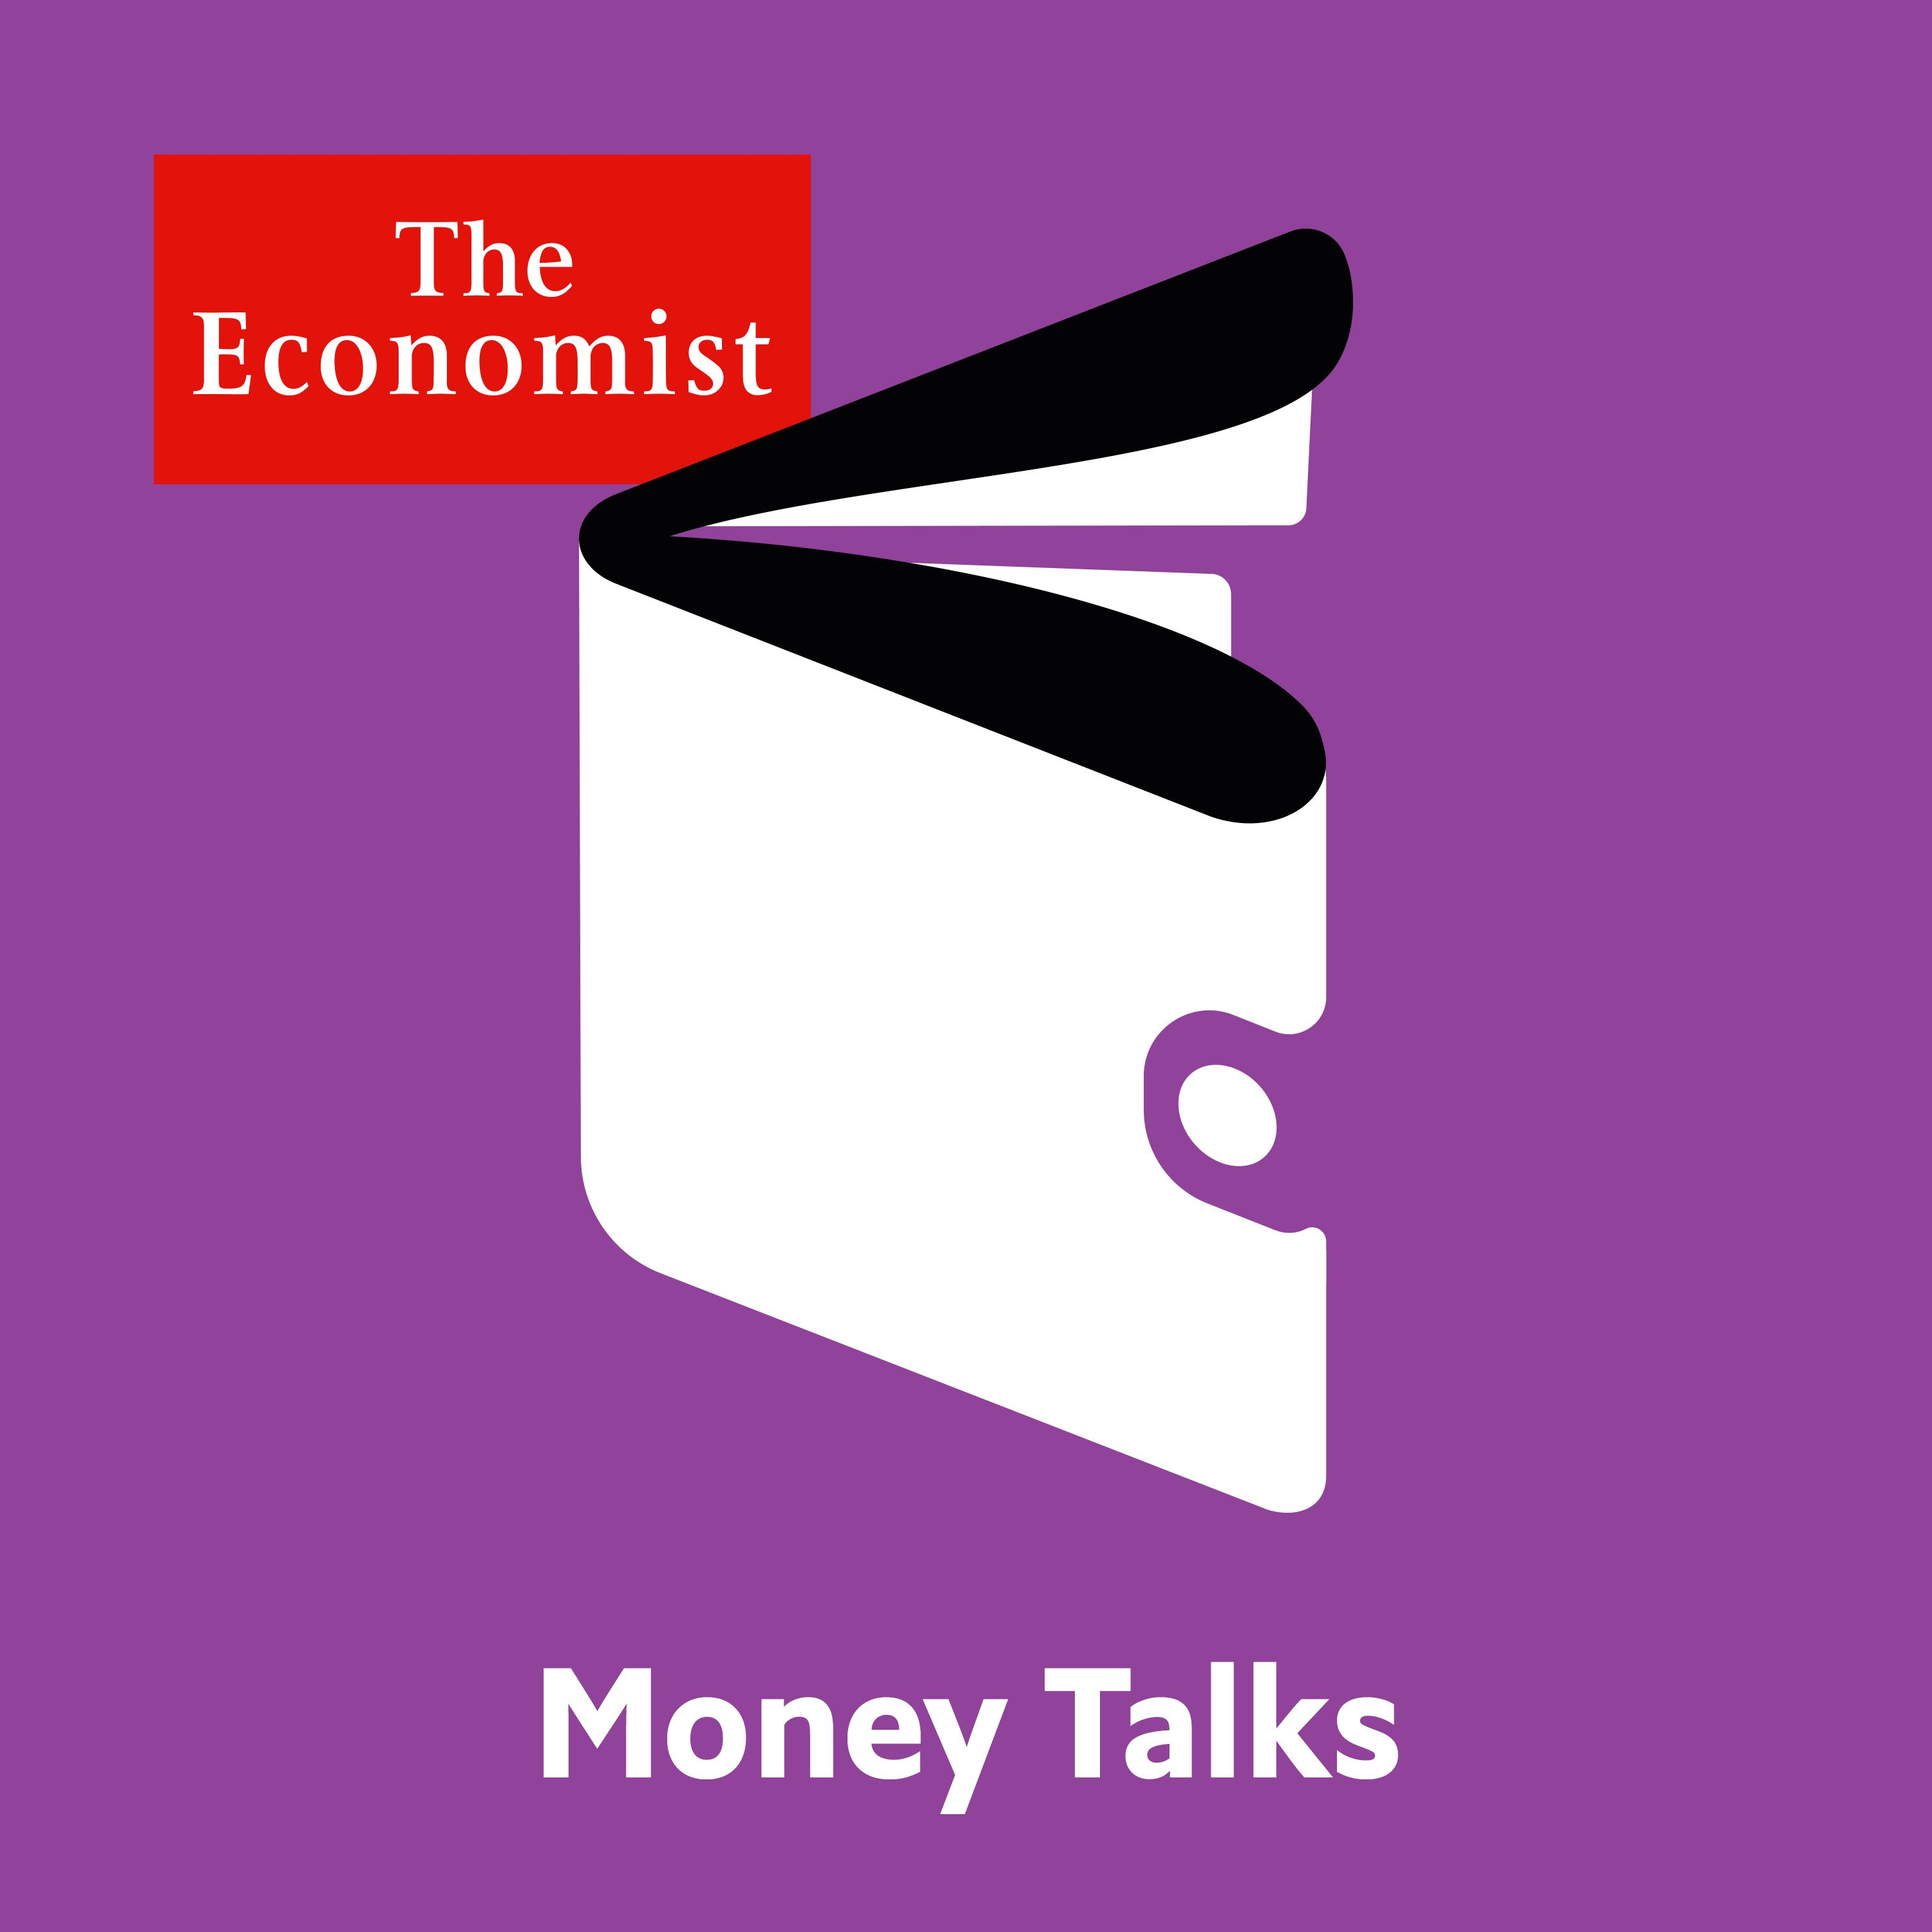 Money Talks: Where have all the workers gone?